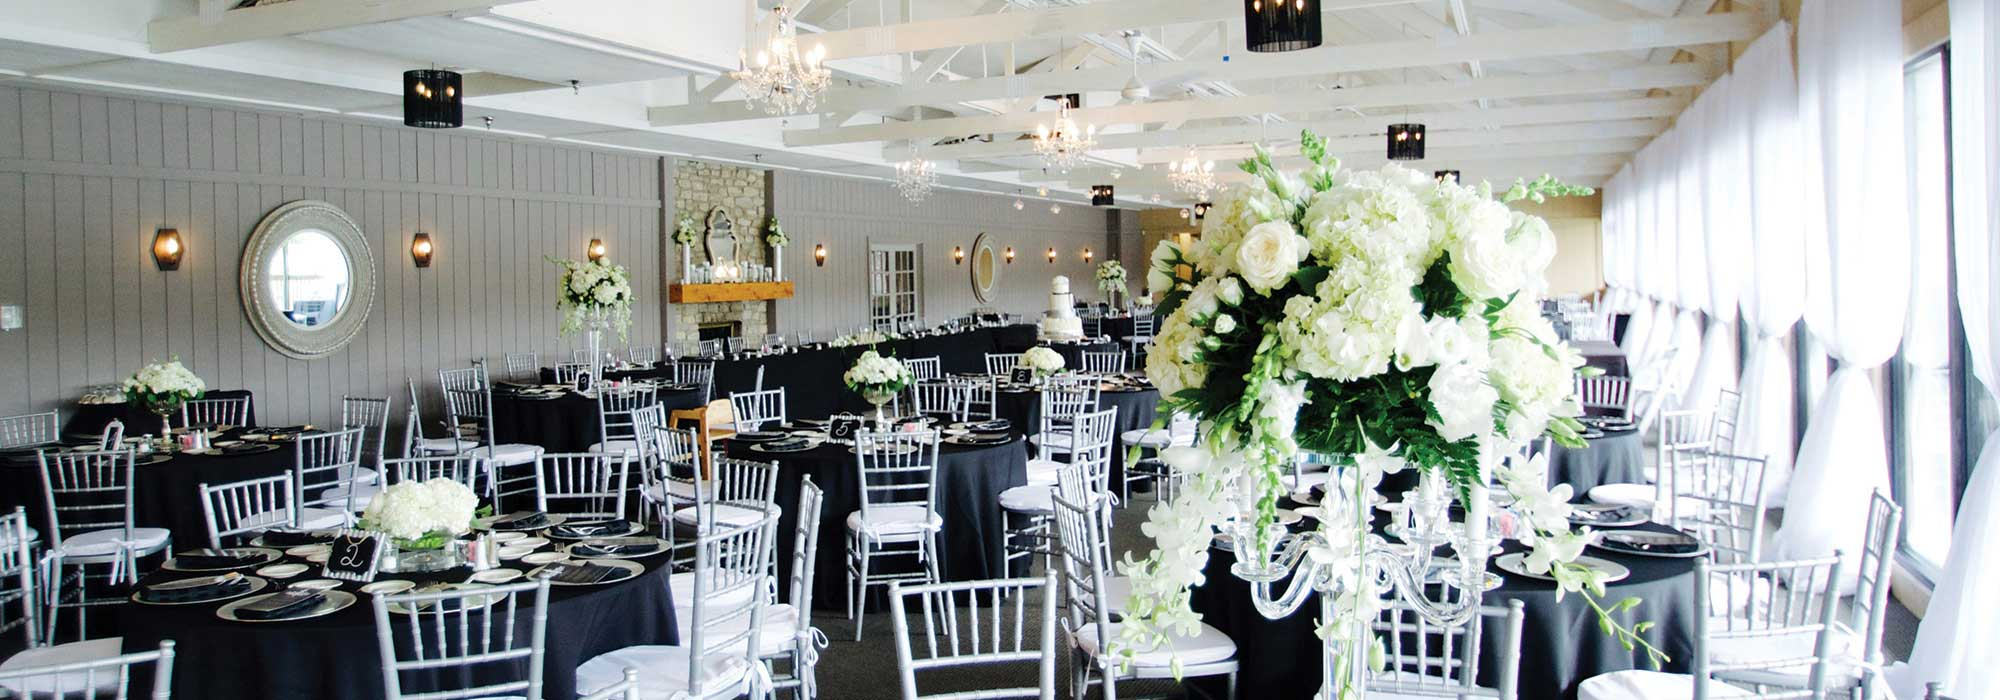 The Lodge at The Willows decorated in white for a formal wedding reception